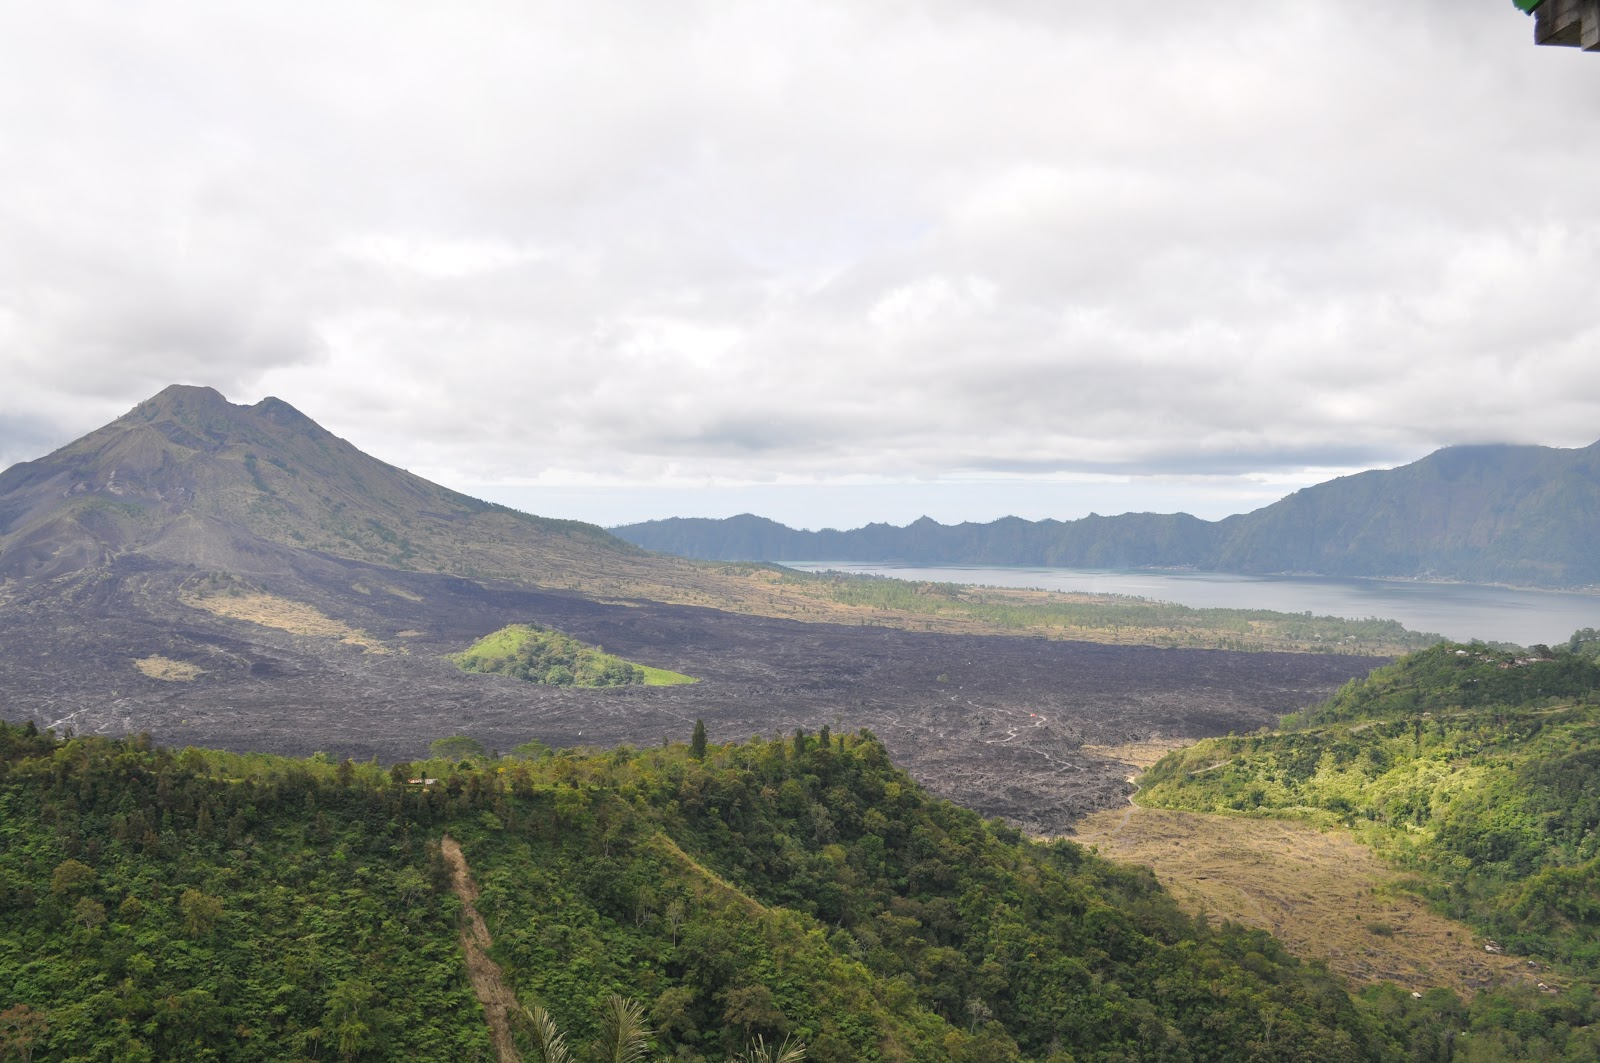 mount batur volcano surrounded by forest and lake batur on a cloudy day in bali indonesia view from sari mountain restaurant